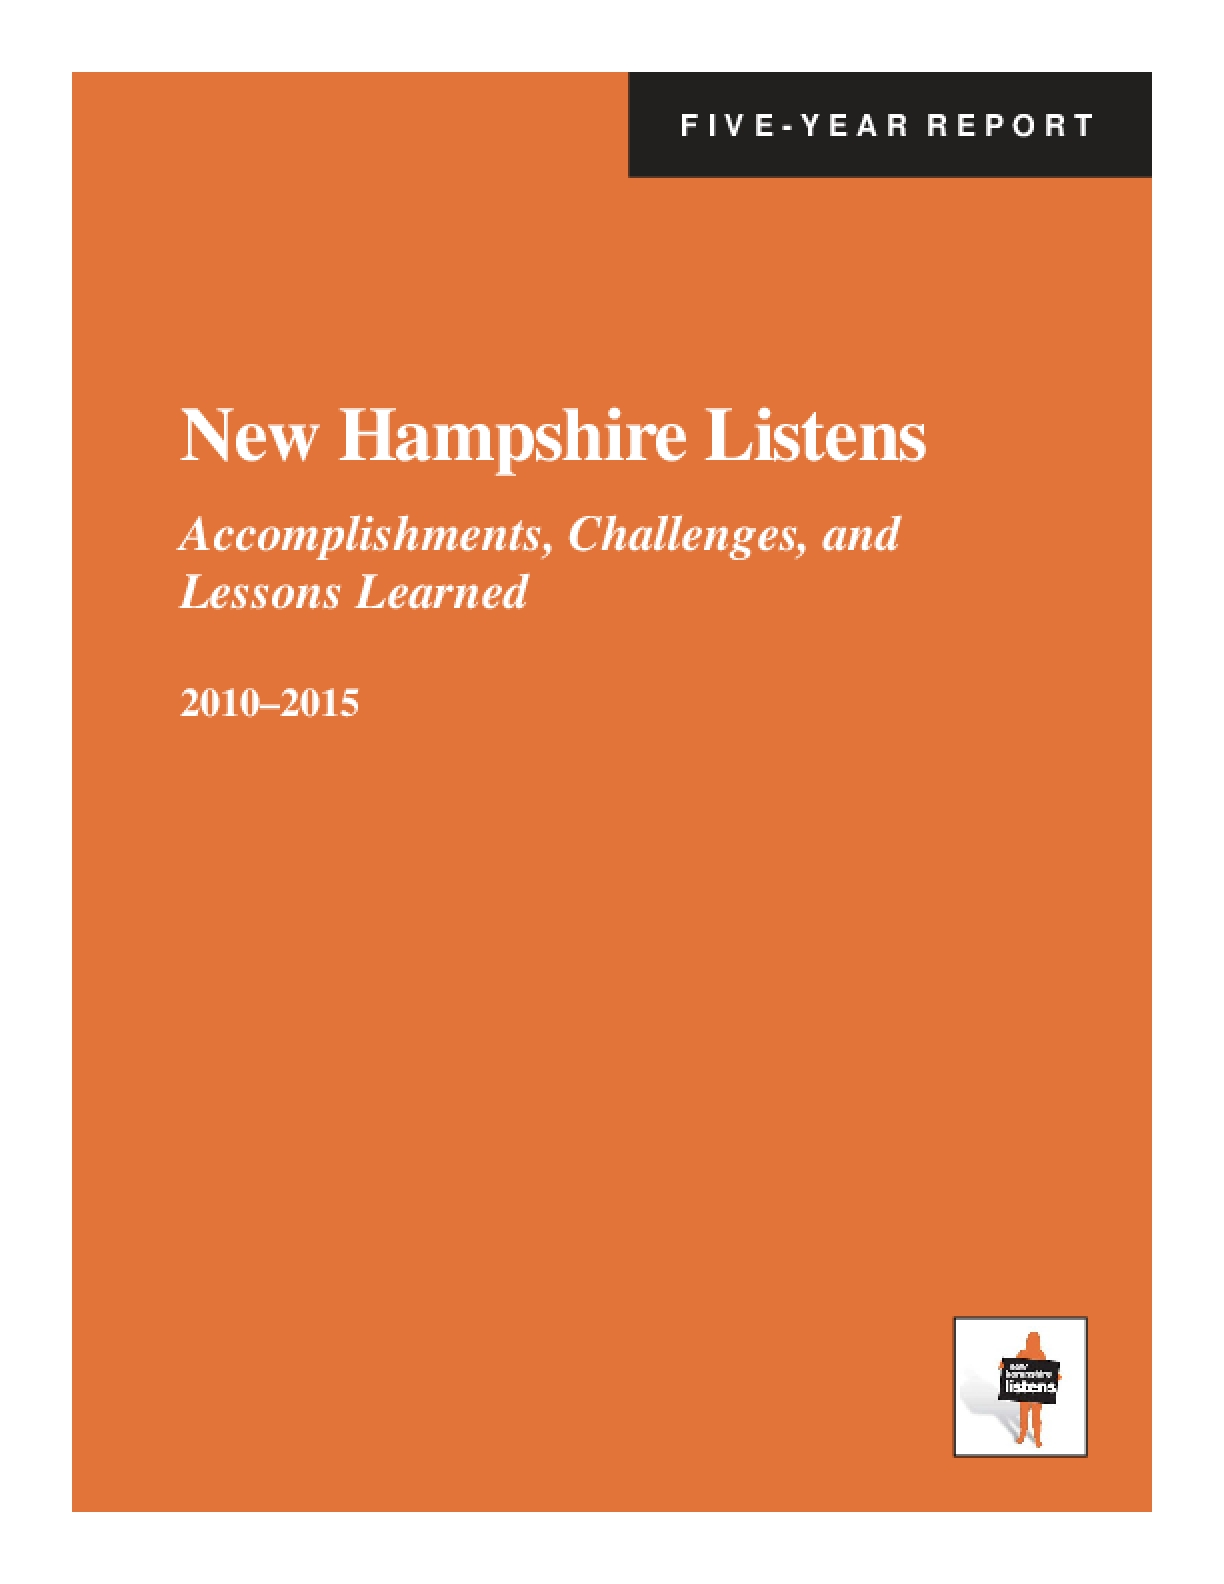 New Hampshire Listens: Accomplishments, Challenges, and Lessons Learned